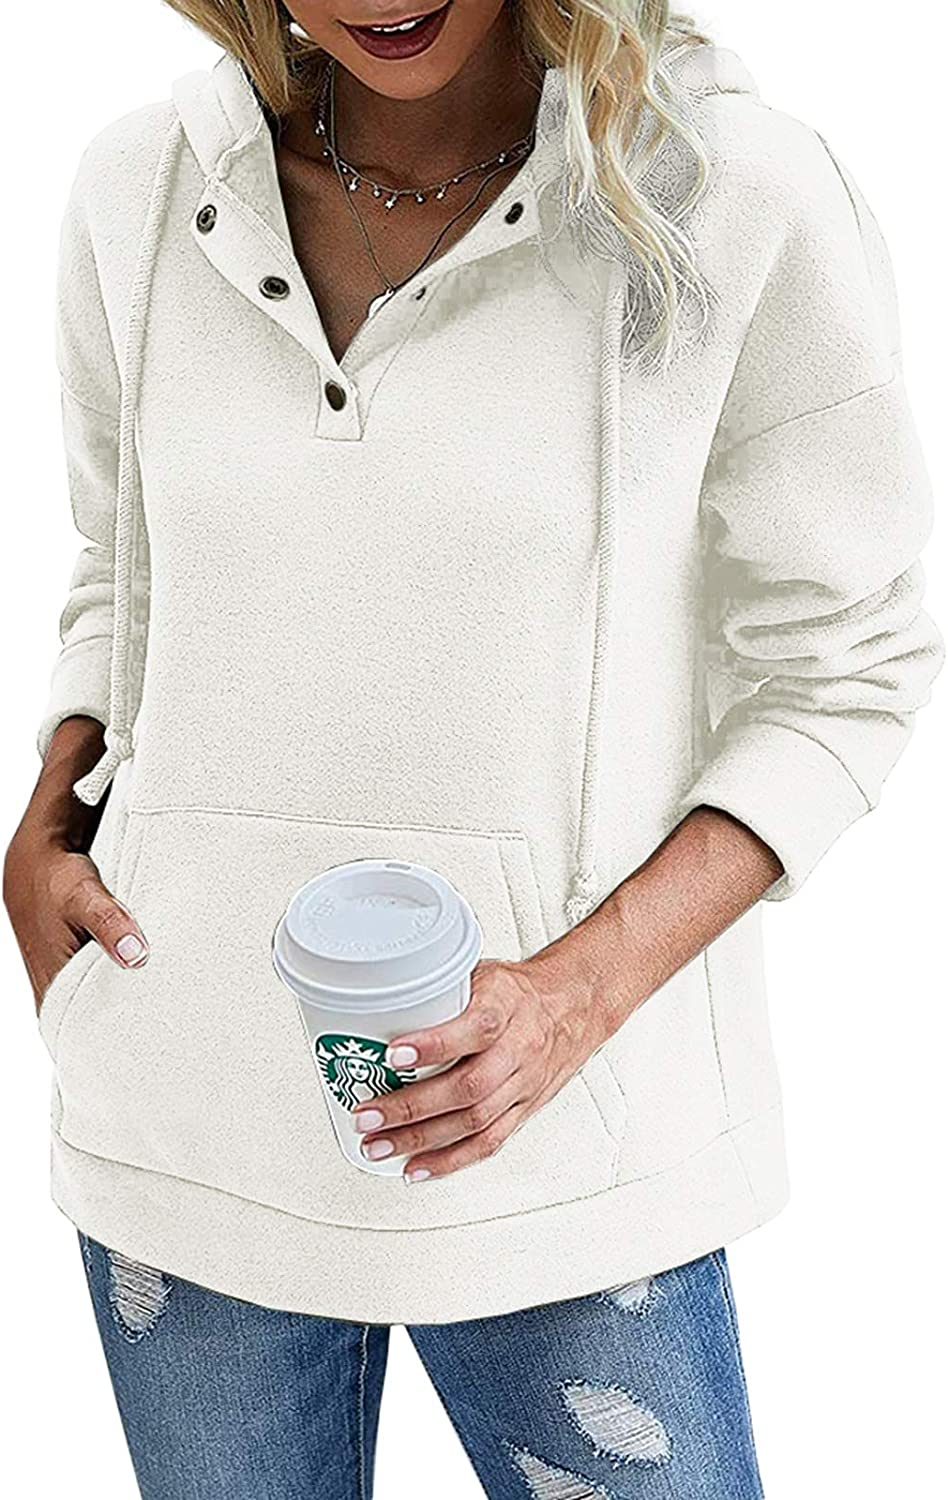 Womens Pullover Hoodies 1/4 Button Up Long Sleeve Casual Hooded Sweatshirts with Pocket